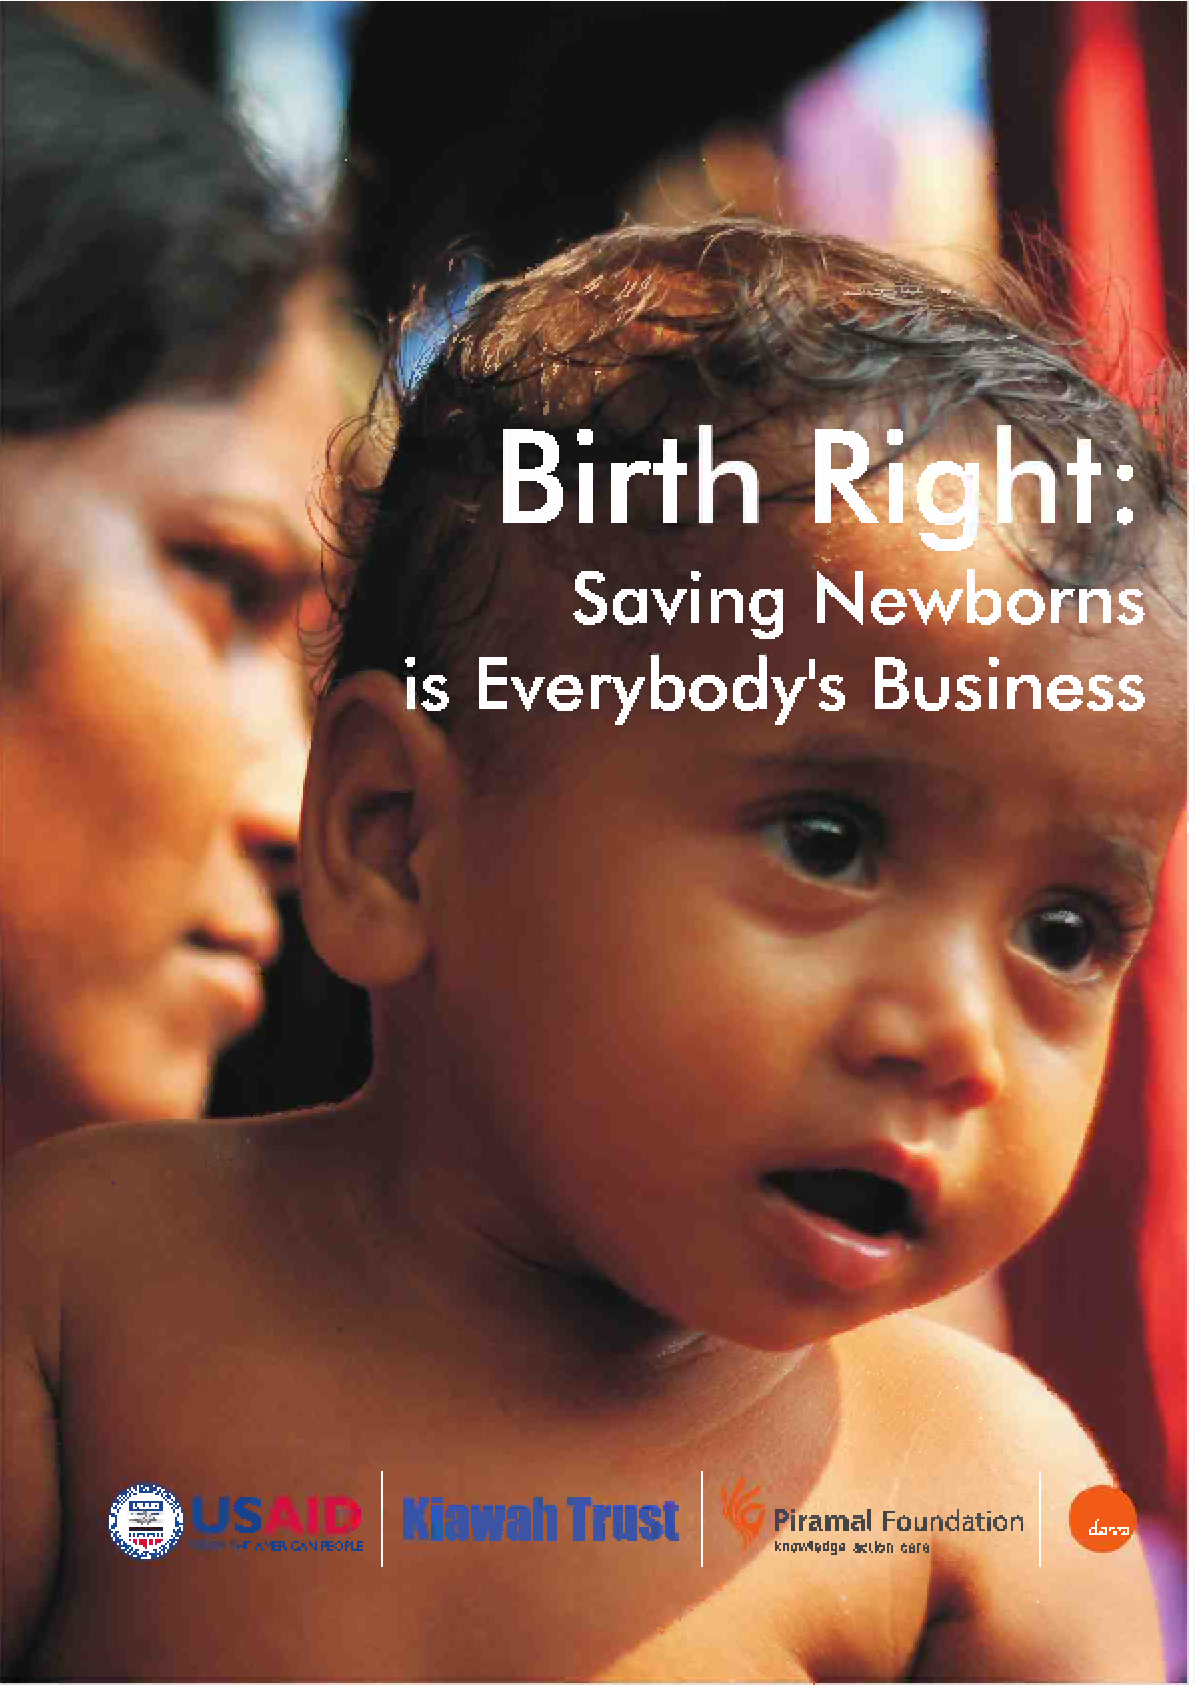 Birthright: Saving newborns is everybody's business (short version)